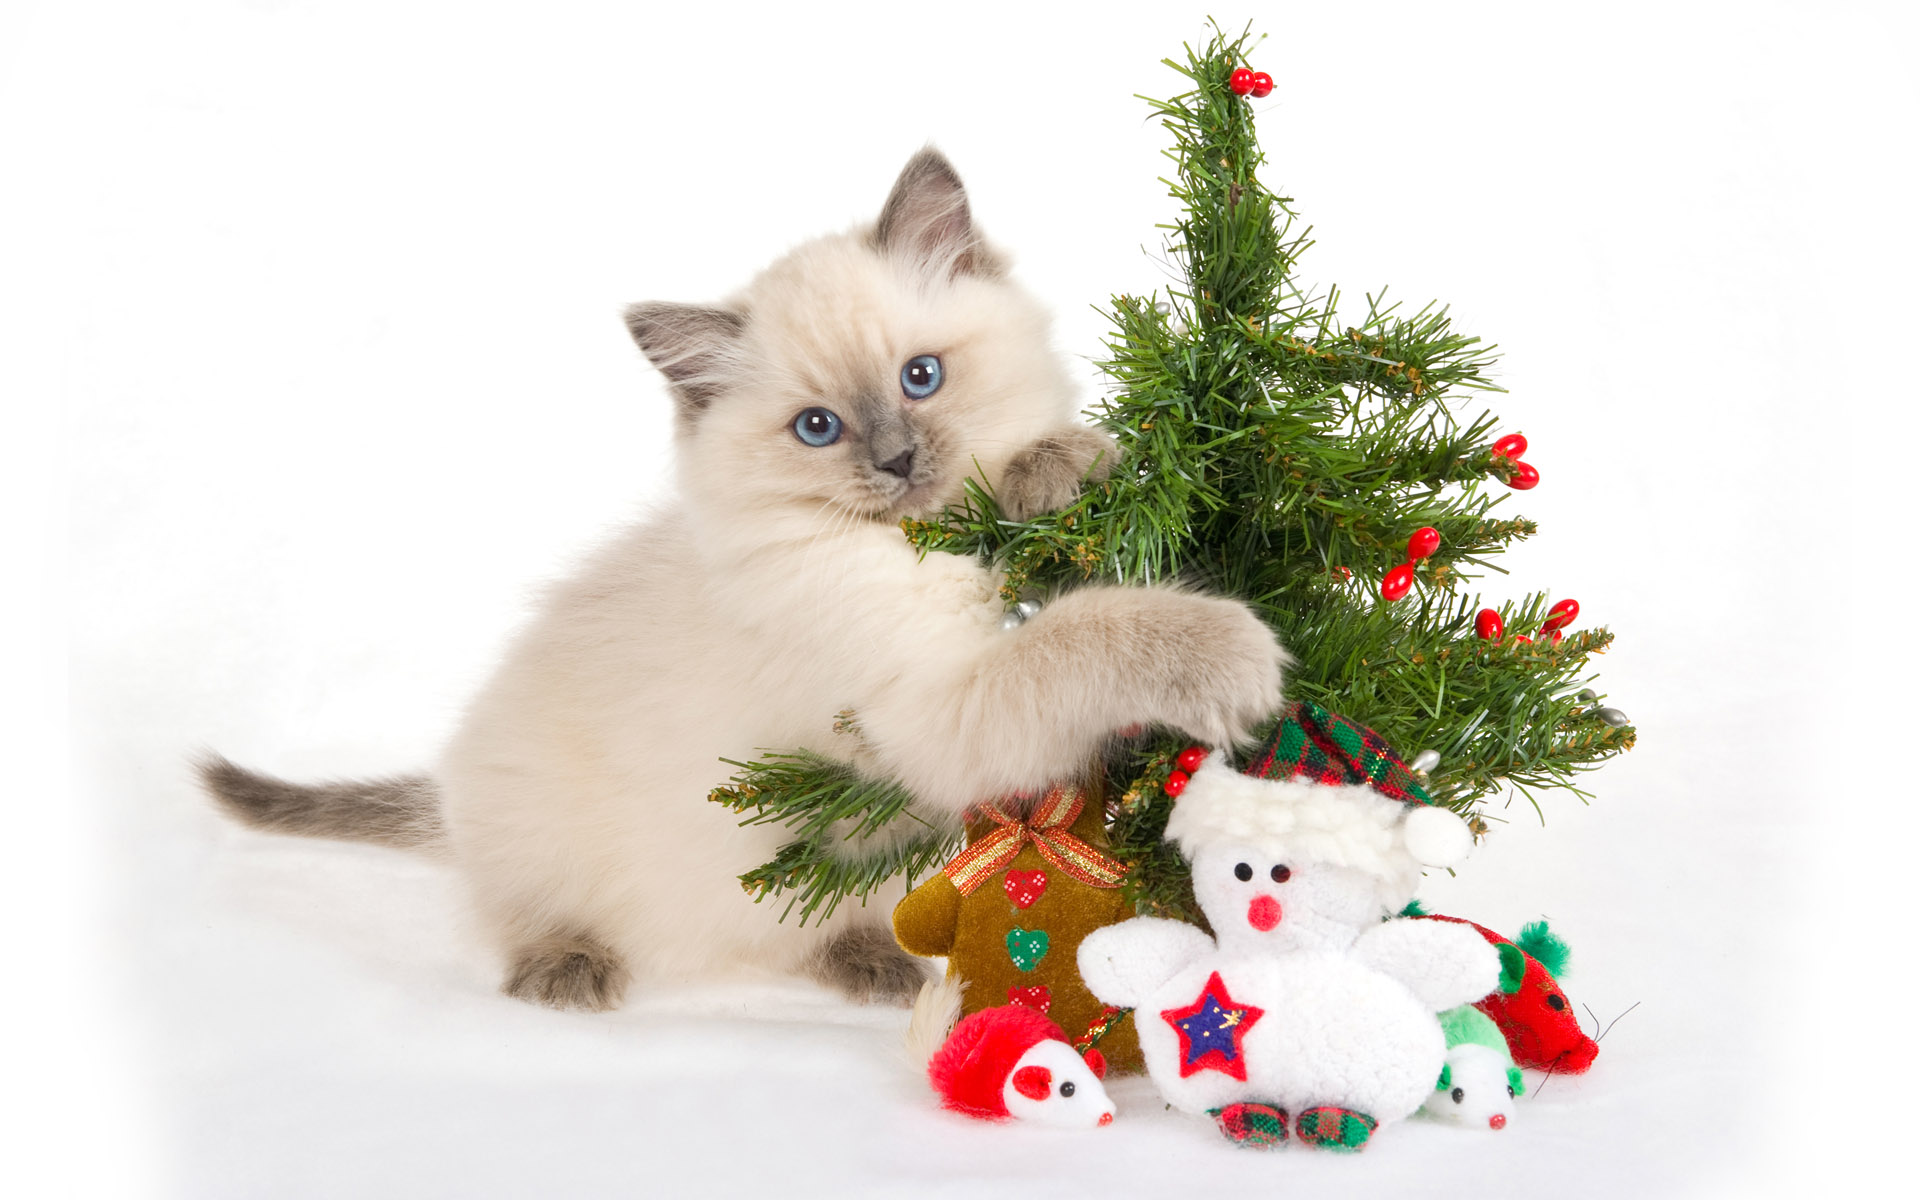 Cat with Christmas tree wallpapers | Cat with Christmas tree stock ...